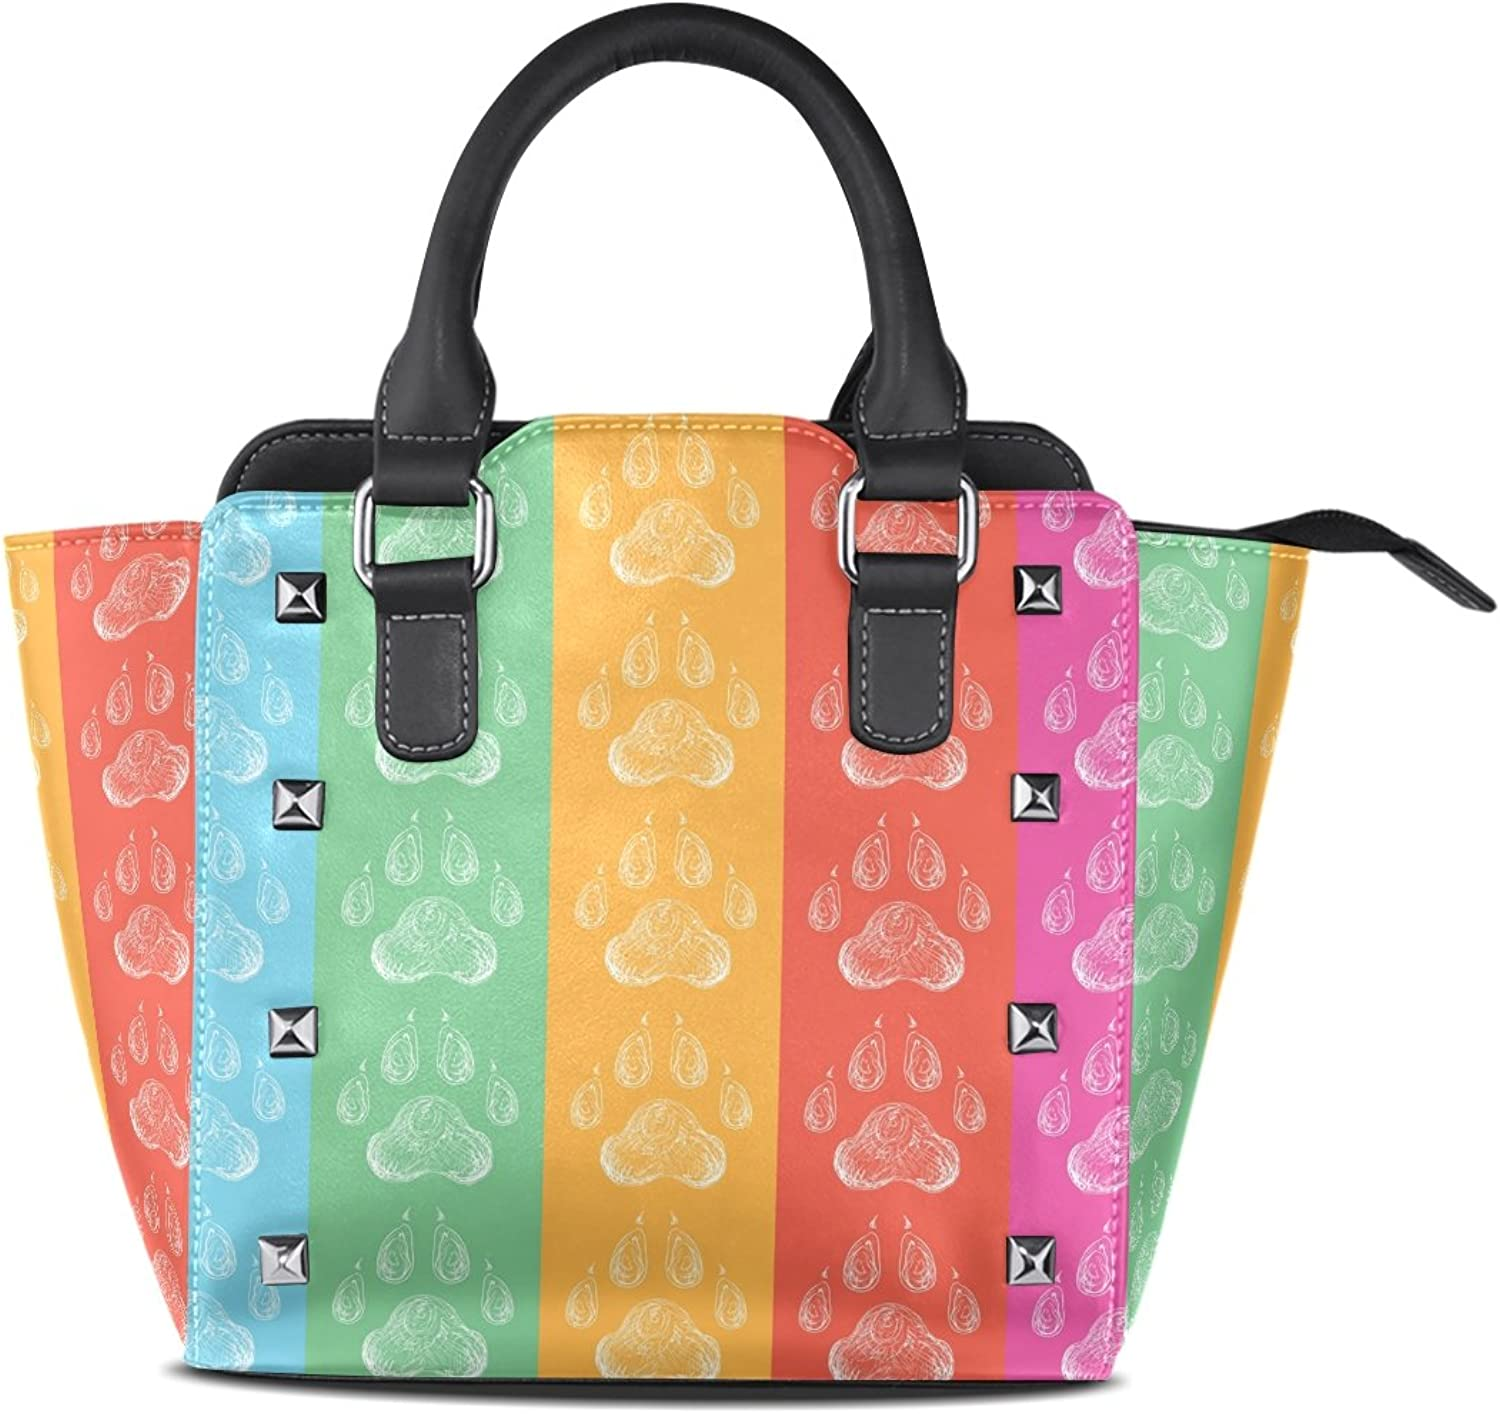 Sunlome Dog colorful Paws Footprints Print Women's Leather Tote Shoulder Bags Handbags